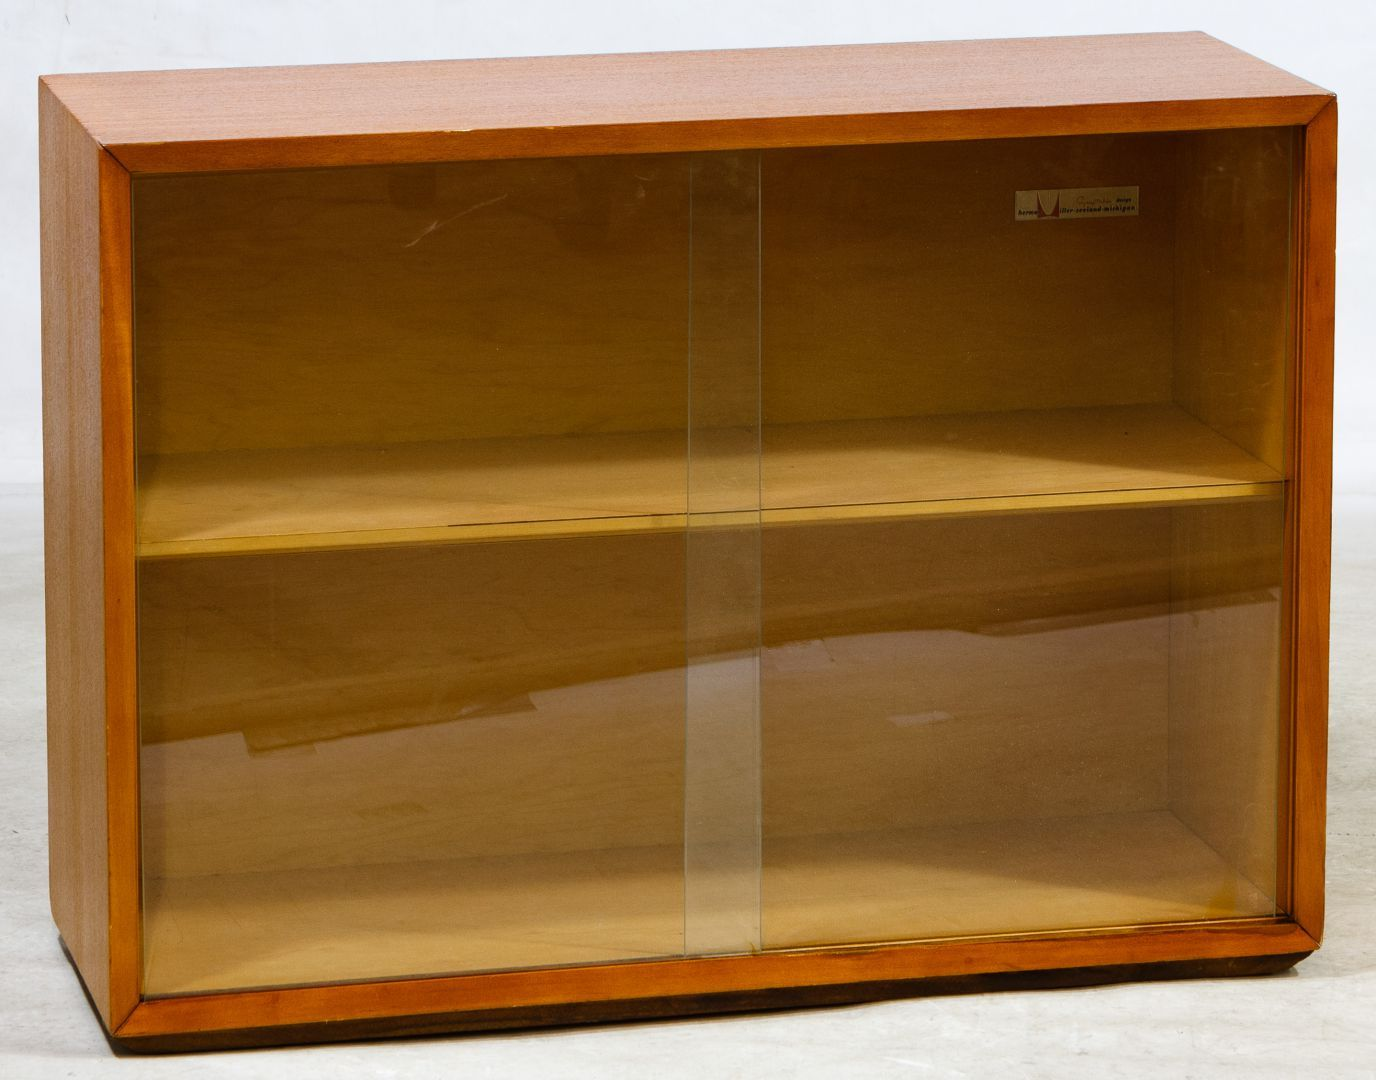 Lot 79 Mcm Teak Display Cabinet By Herman Miller Having Sliding